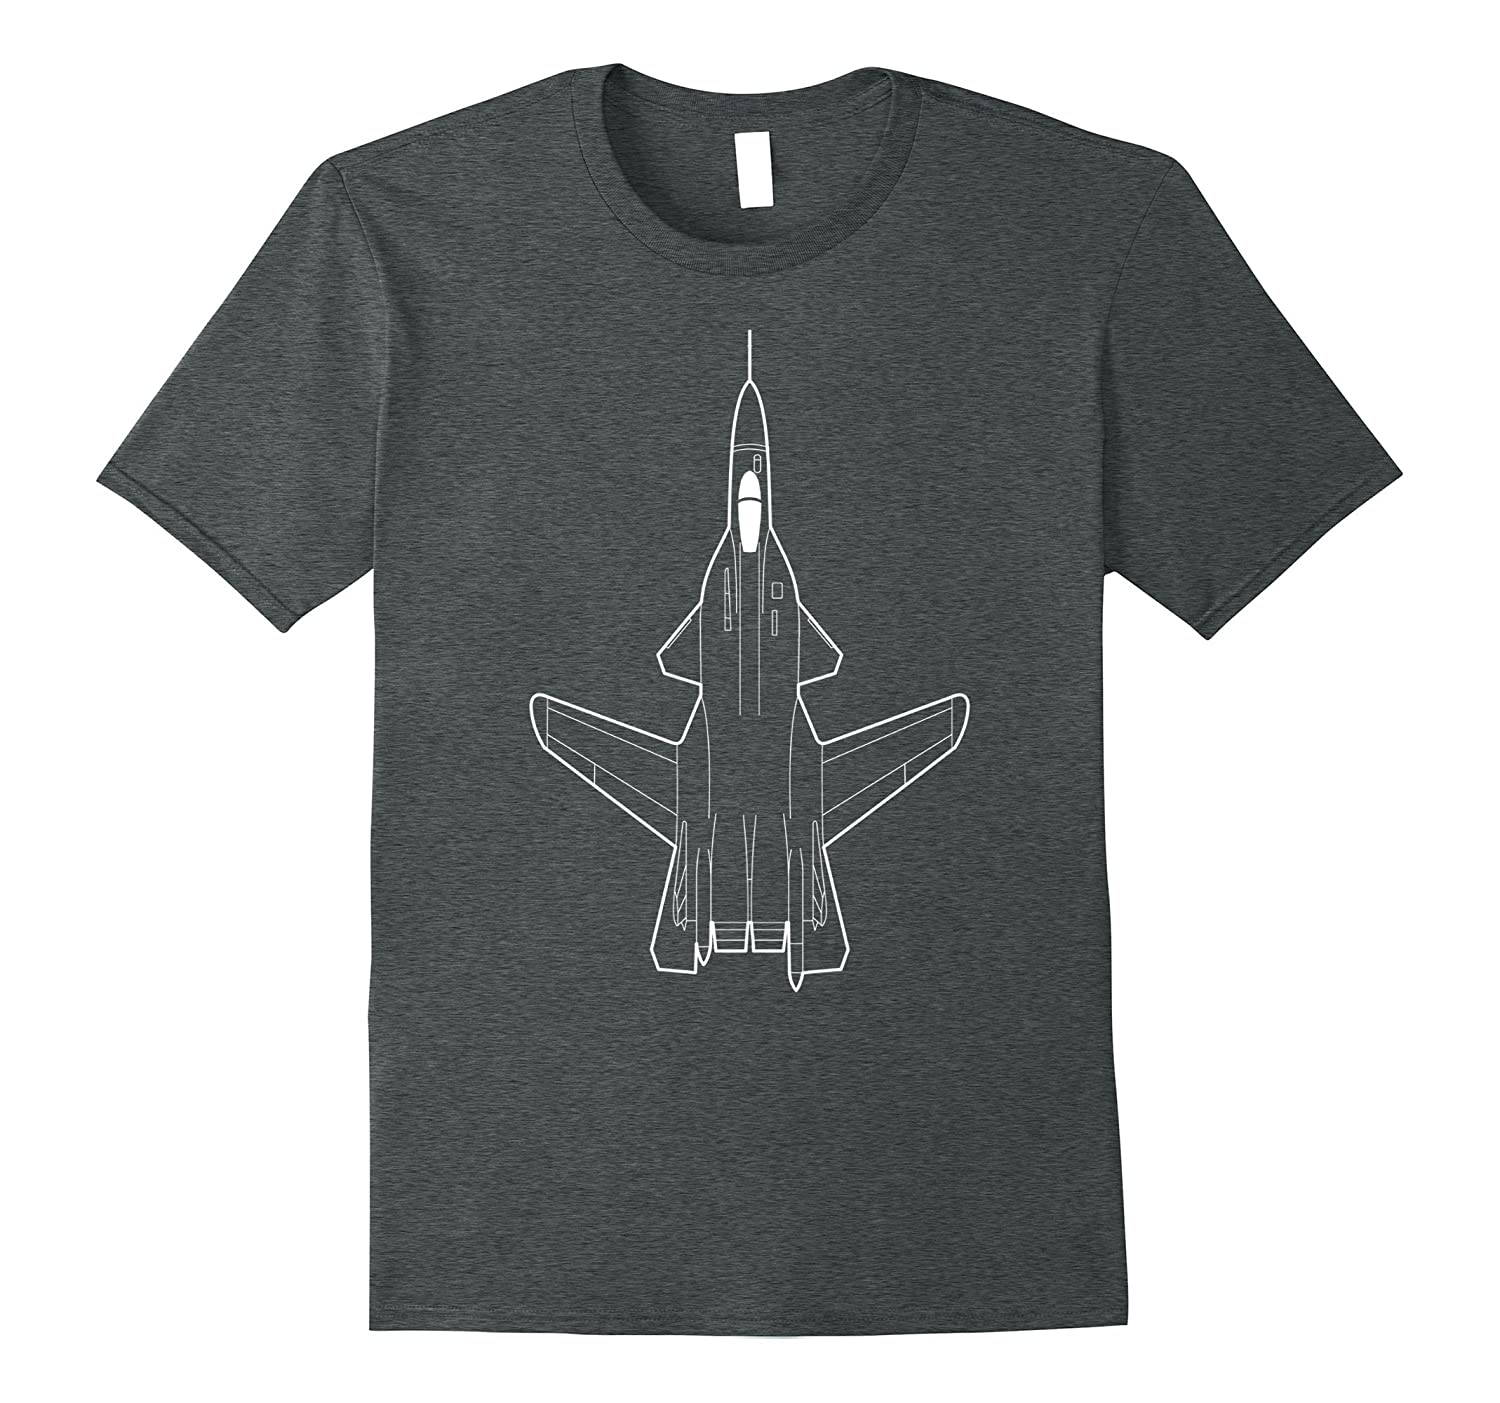 Aircraft Shirt: Plane Fighter Fly Jet Army Flying Pilot Tee-Art